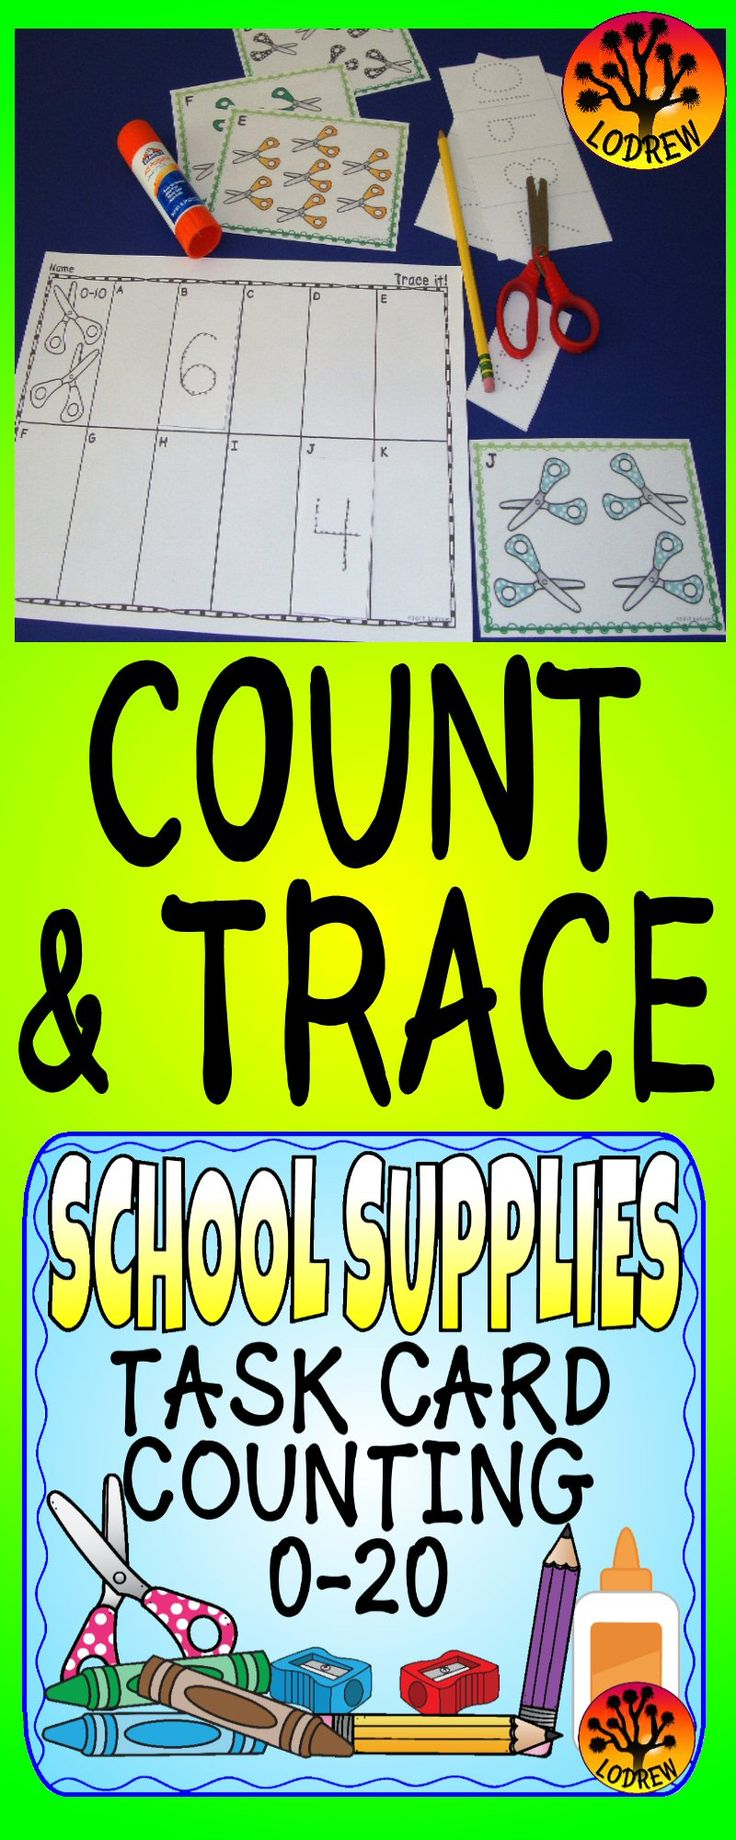 130 pages of school supply counting task cards and no prep recording sheets. Activities for back to school, fall, or anytime. Centers include subitizing, counting, numbers, cardinality, scissor skills, cut and paste, writing, tracing, dice, tally marks, task cards, number sets, fine motor, cut and glue, matching, math, and more. For kindergarten, preschool, SPED, child care, homeschool, or any early childhood setting.